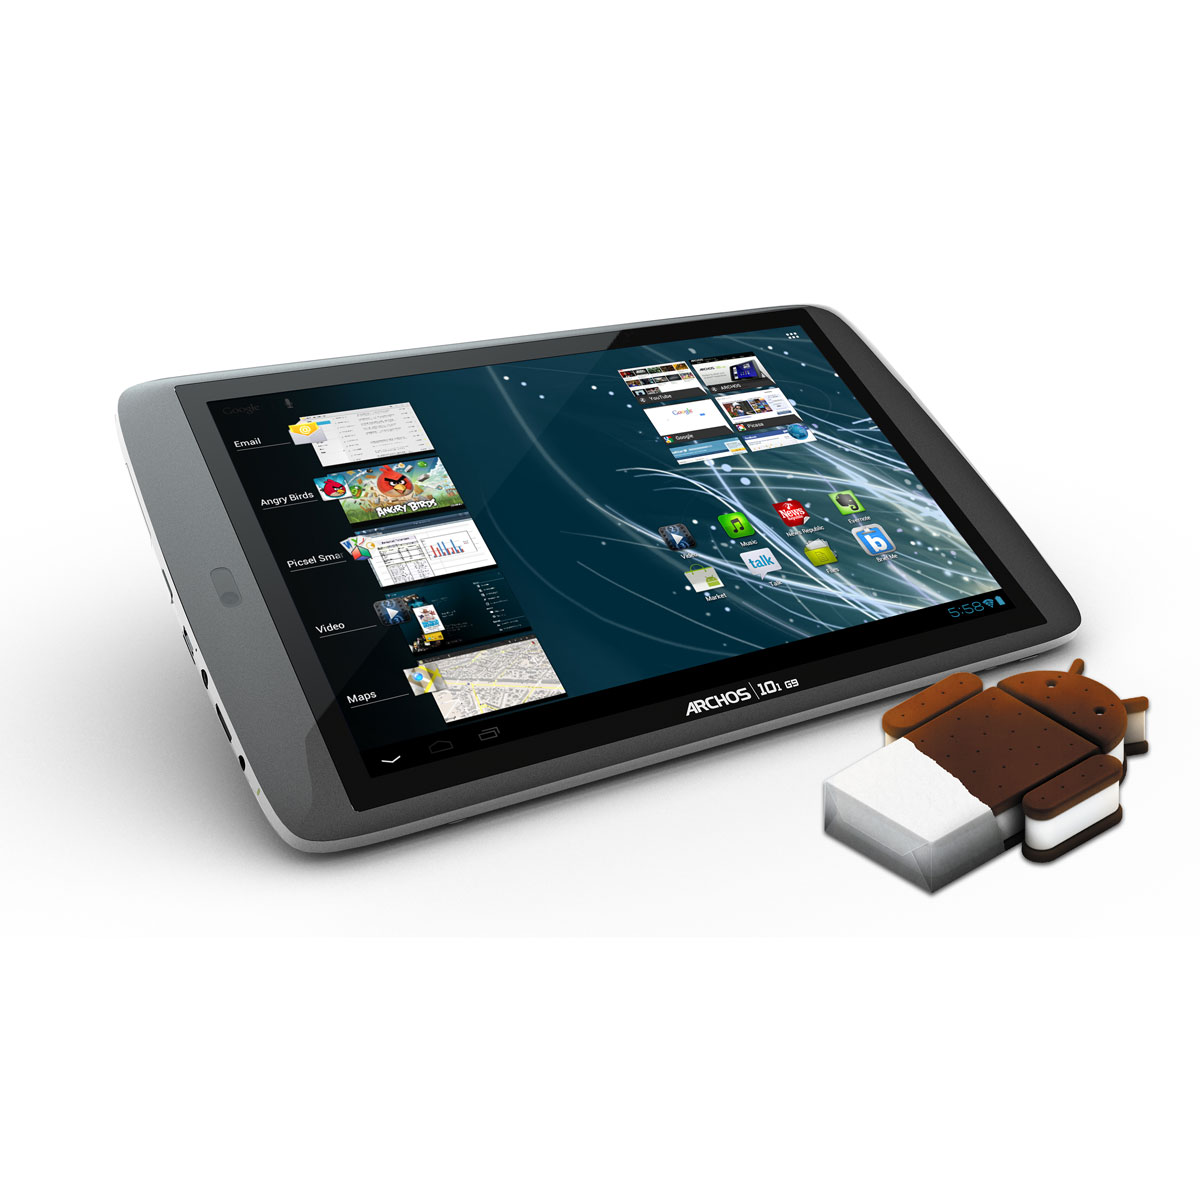 """Tablette tactile Archos 101 G9 Turbo ICS 250 Go Tablette Internet - OMAP 4 Smart multi-core 1.5 GHz 250 Go 10"""" LCD tactile Wi-Fi N/Bluetooth Webcam Android 4.0"""